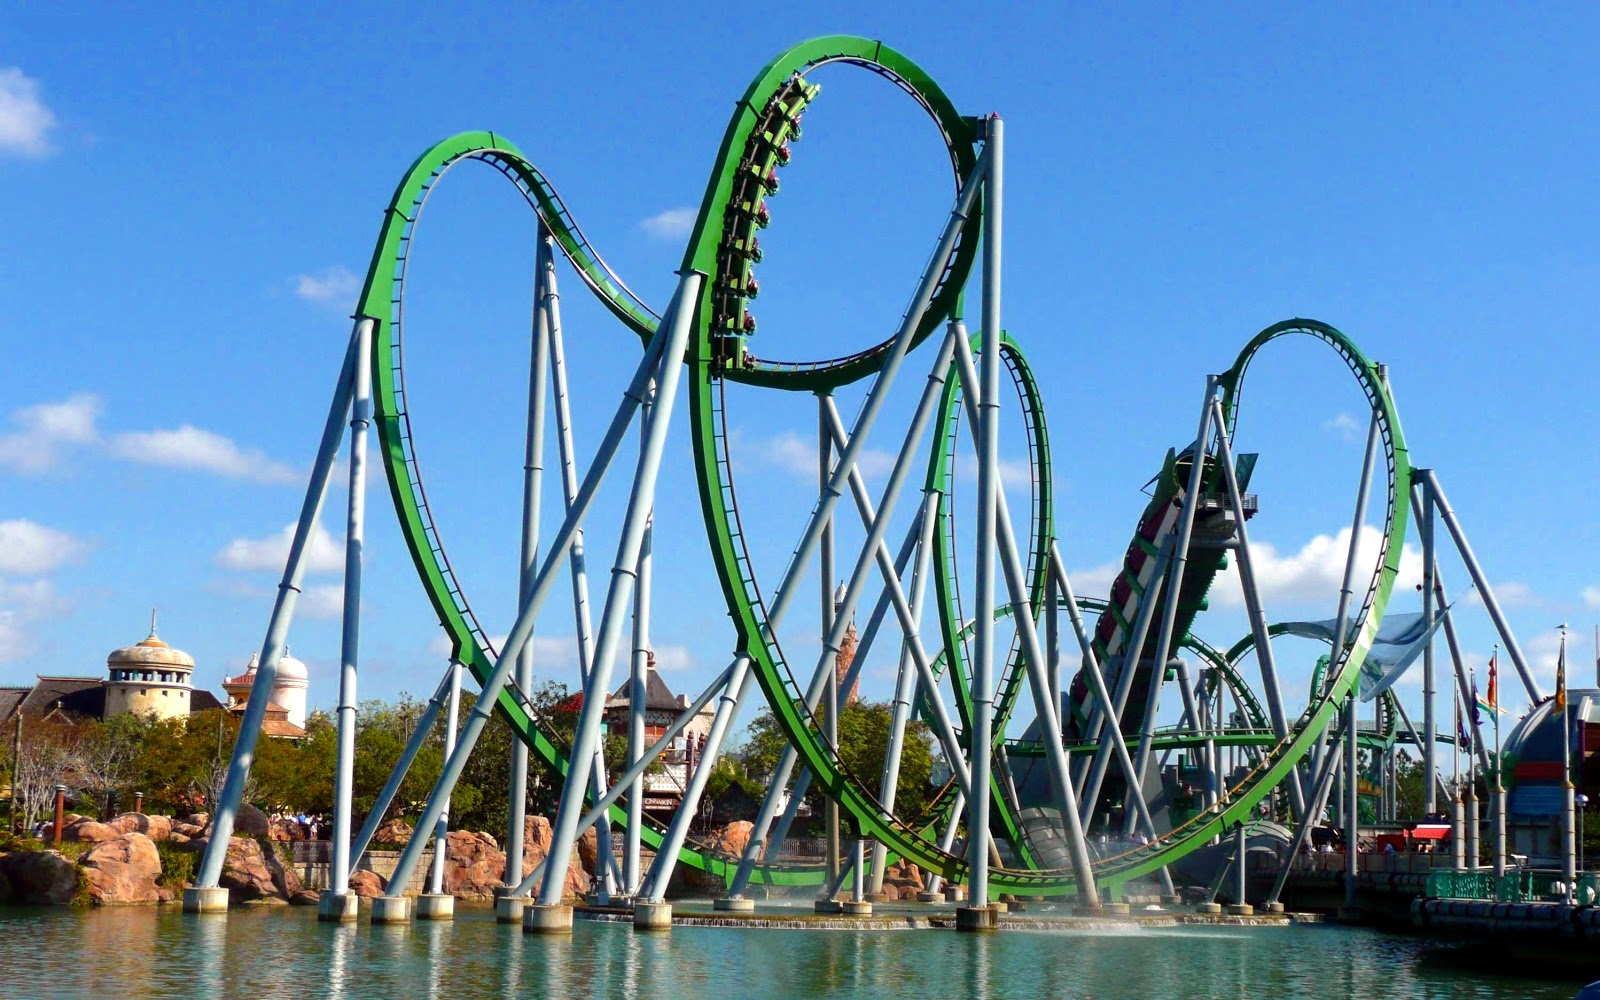 The_Hulk_Coaster_(5143123646)